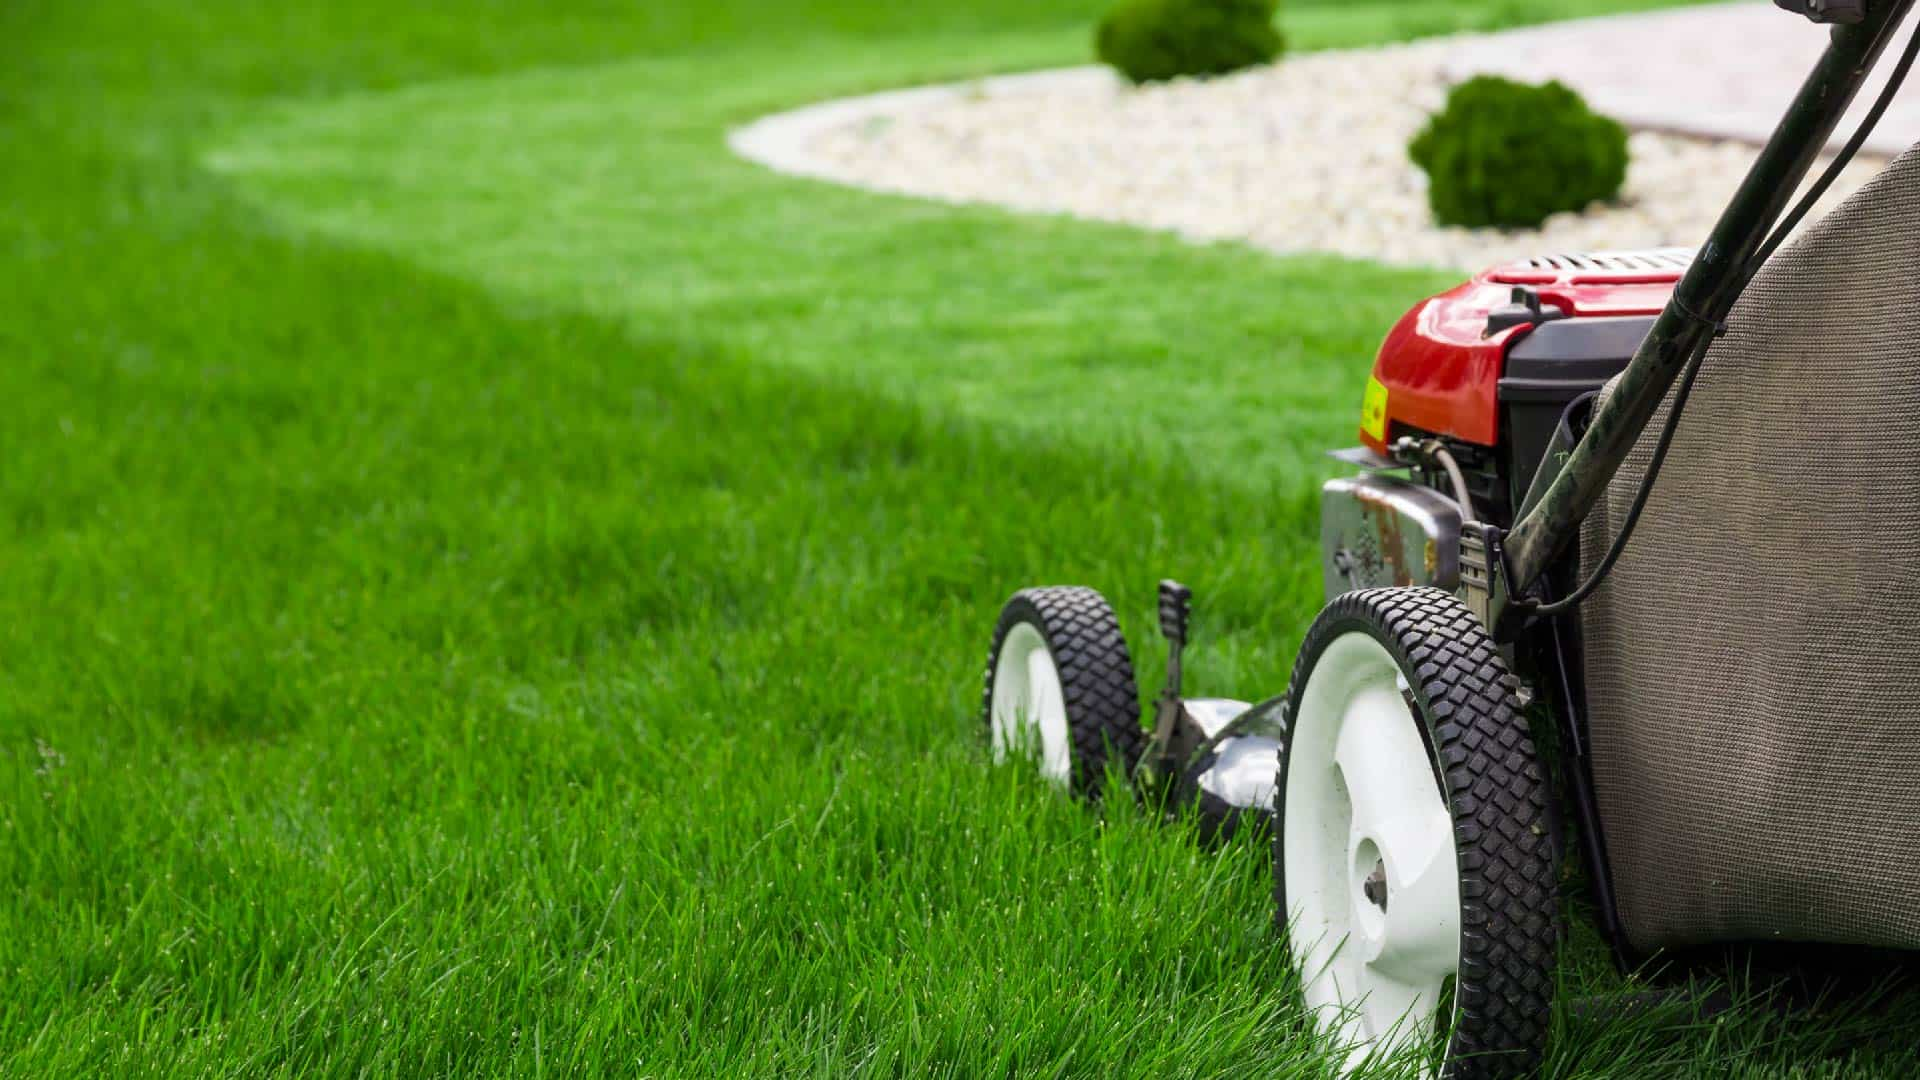 lawn mower on partially mowed lawn